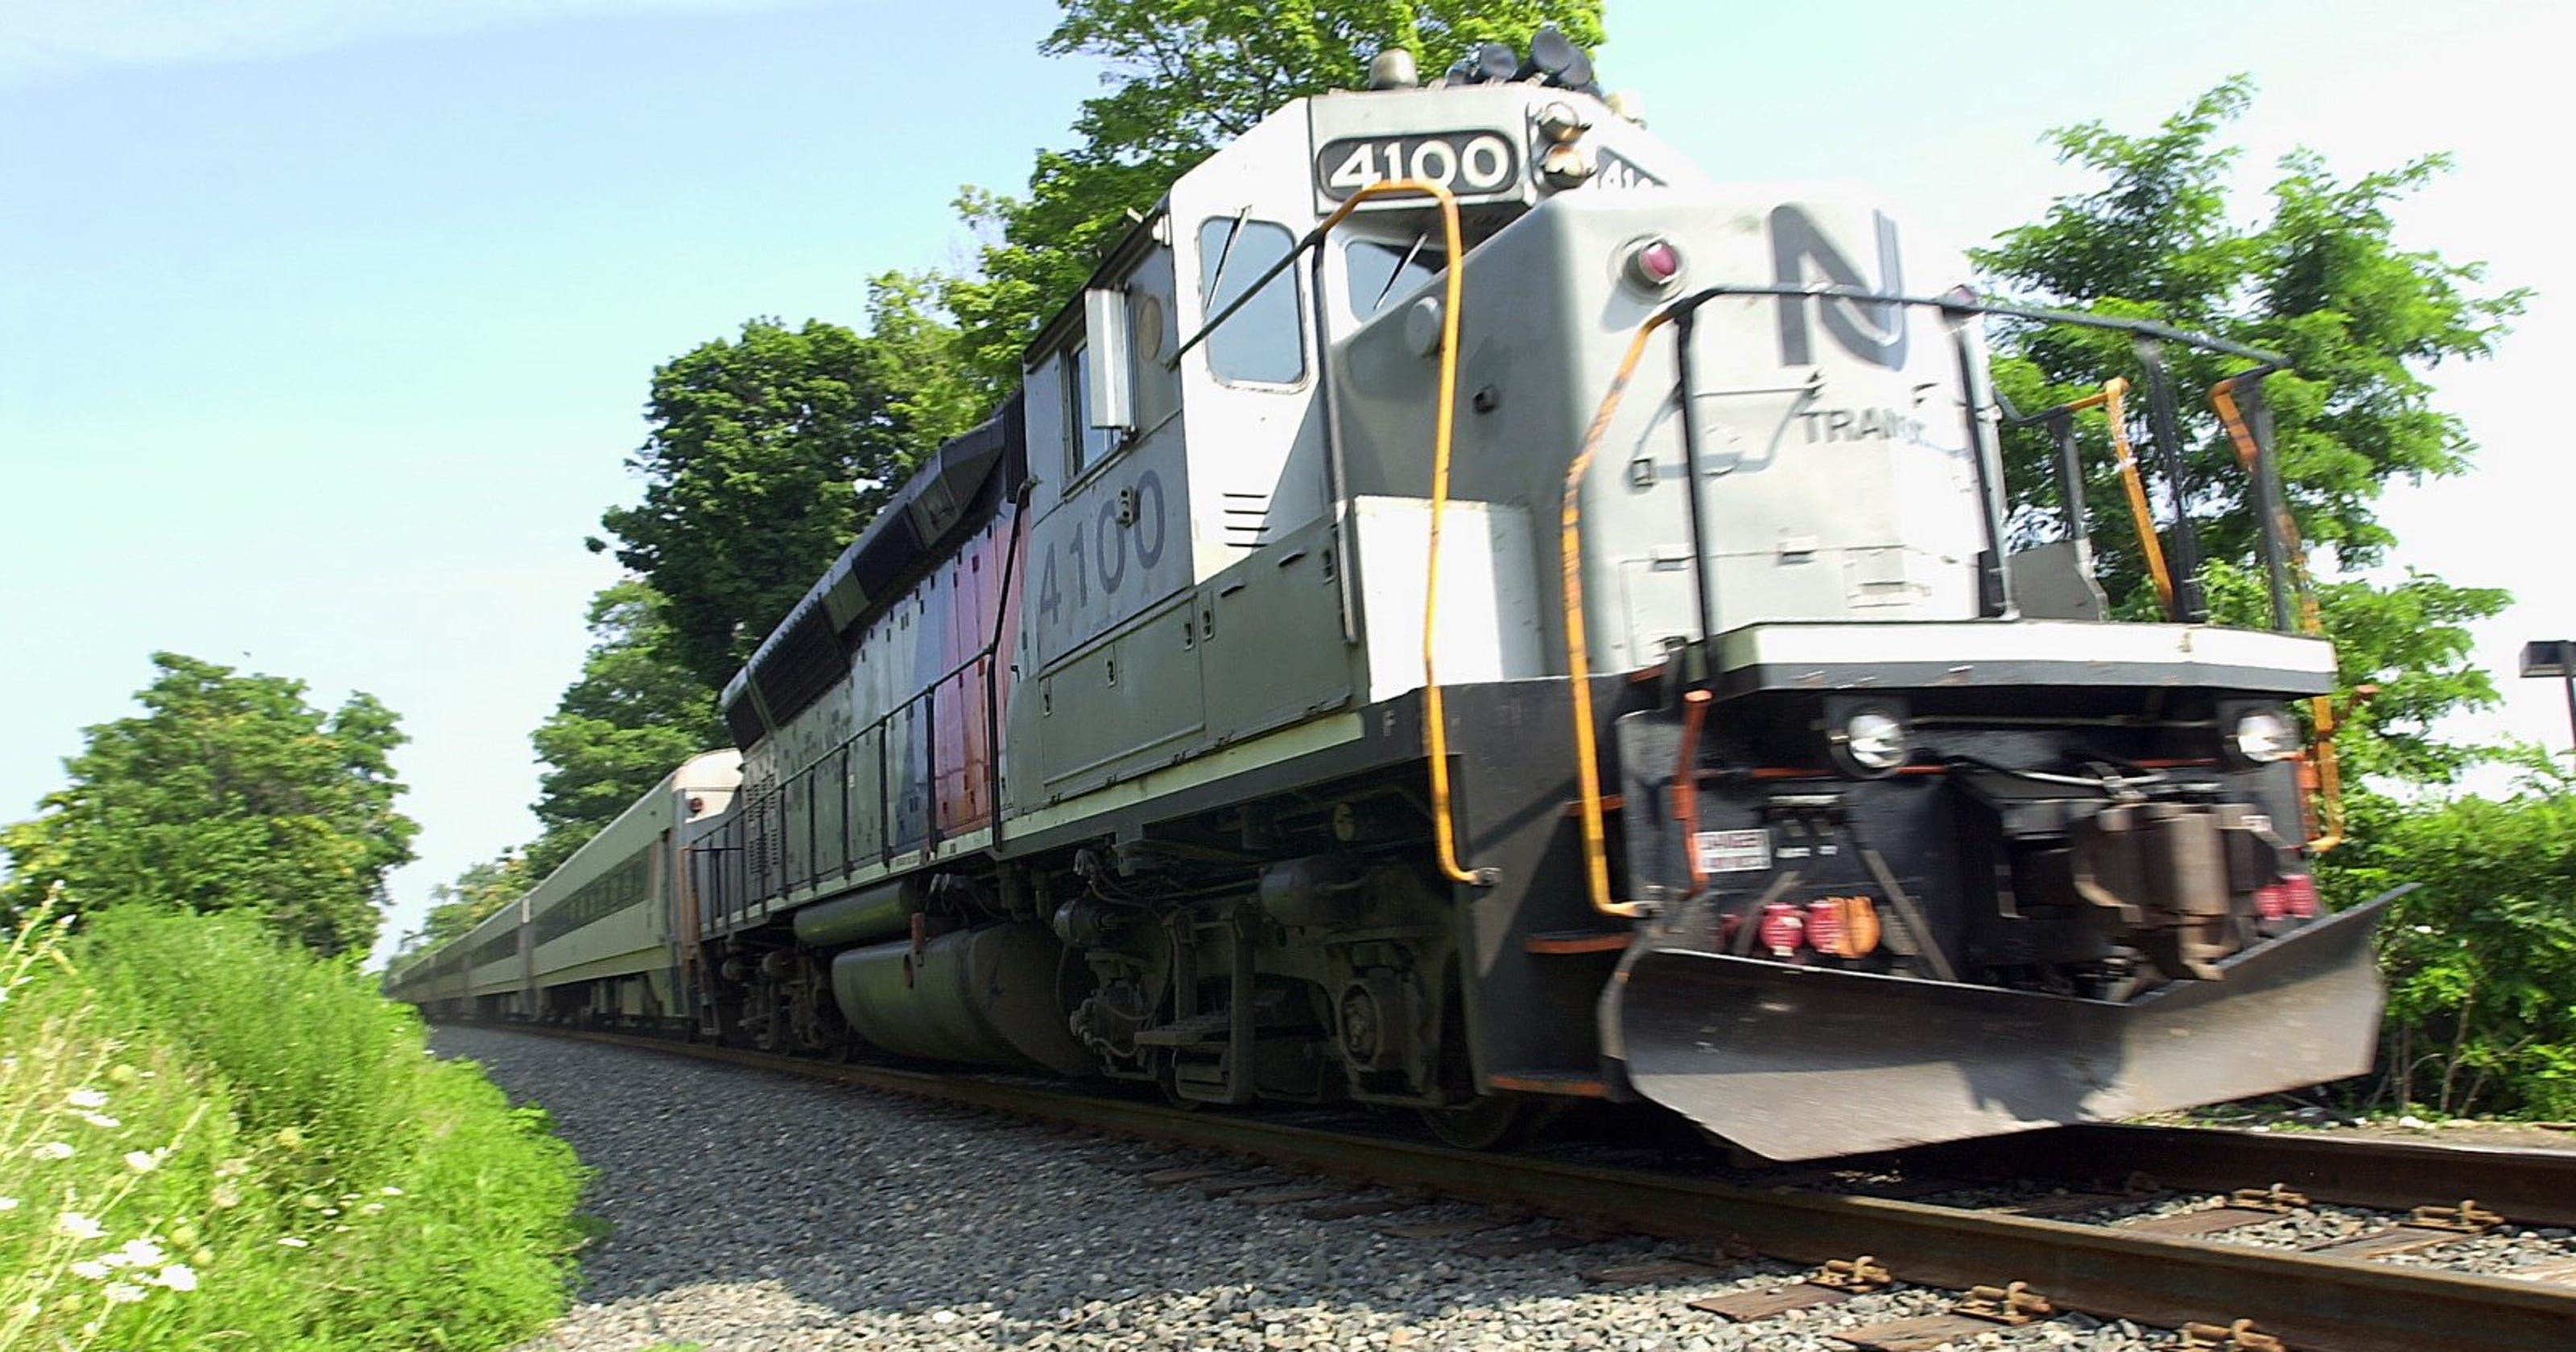 Buses to replace trains (again) on Pascack Valley Line